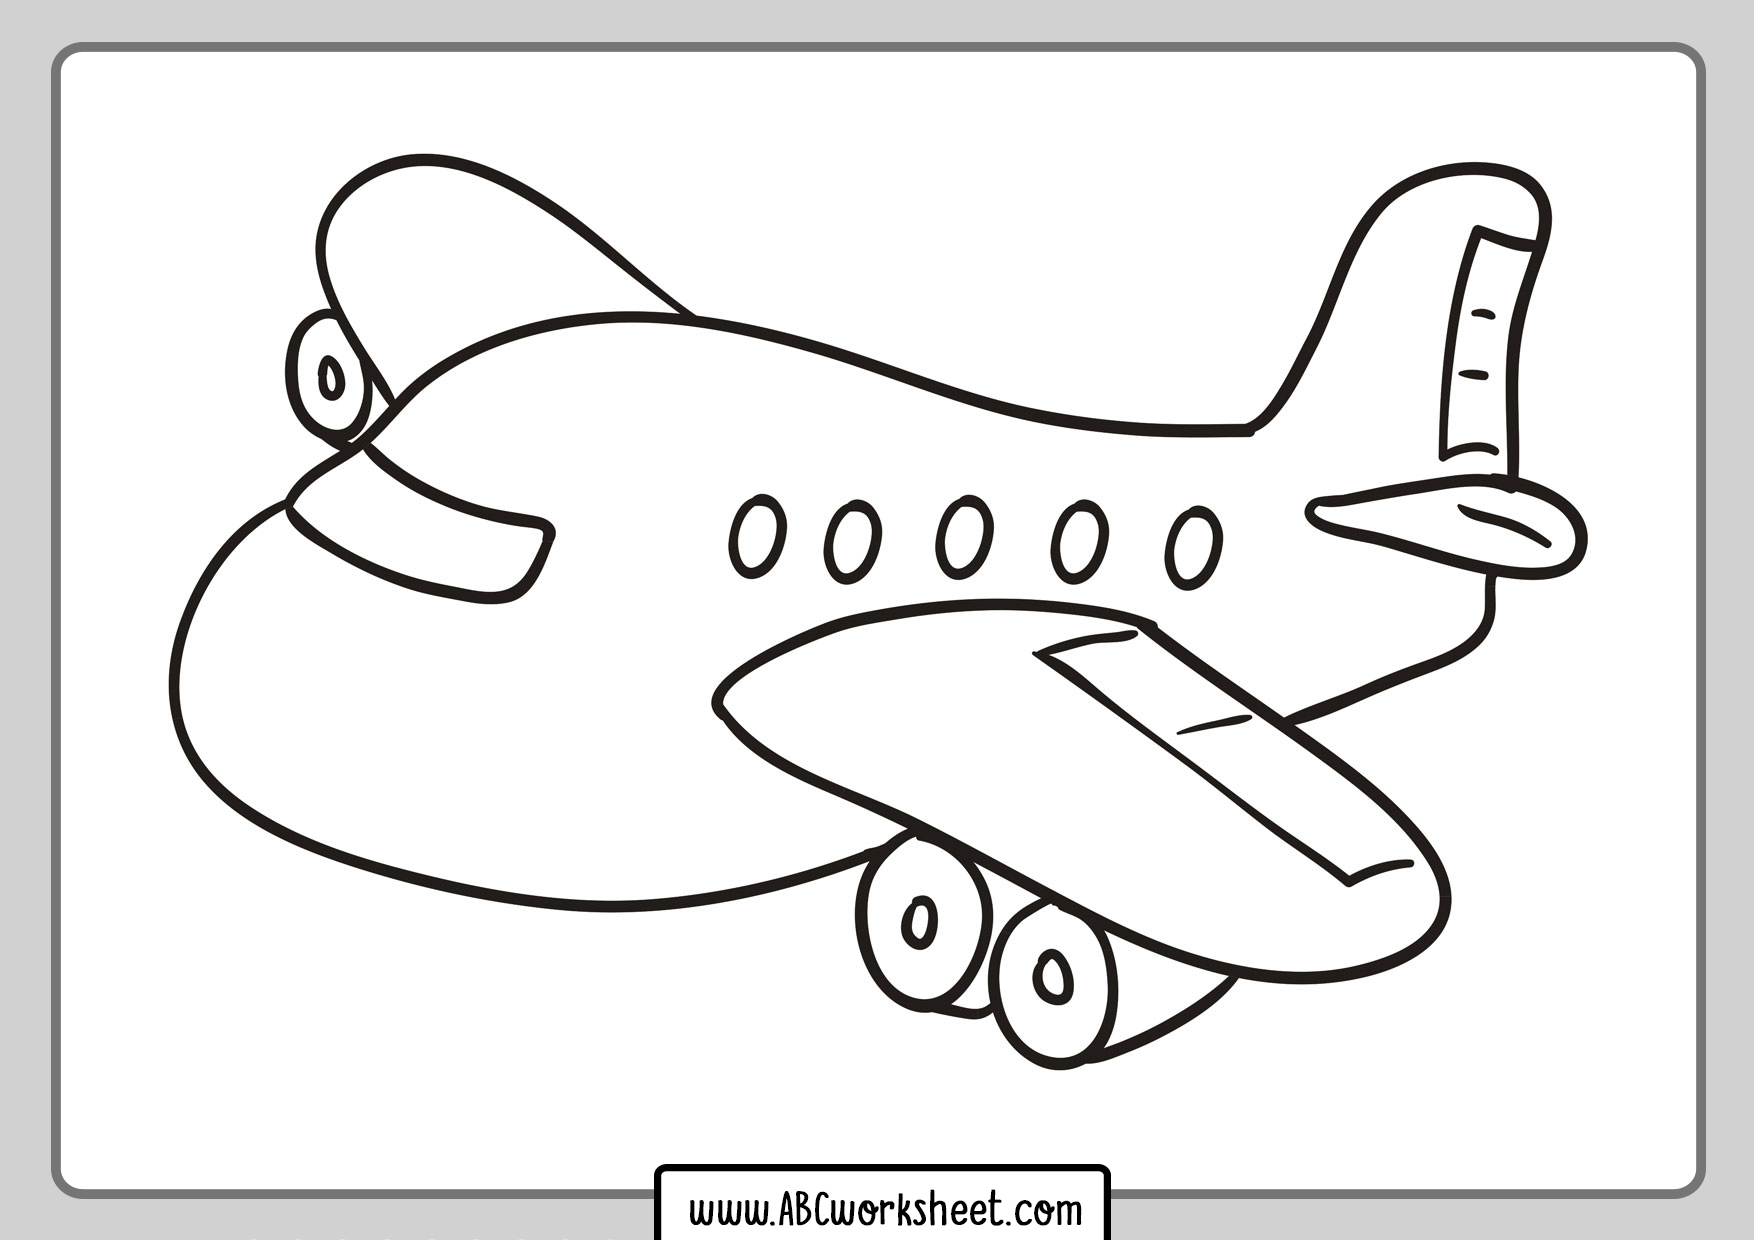 Airplane Coloring Page For Children